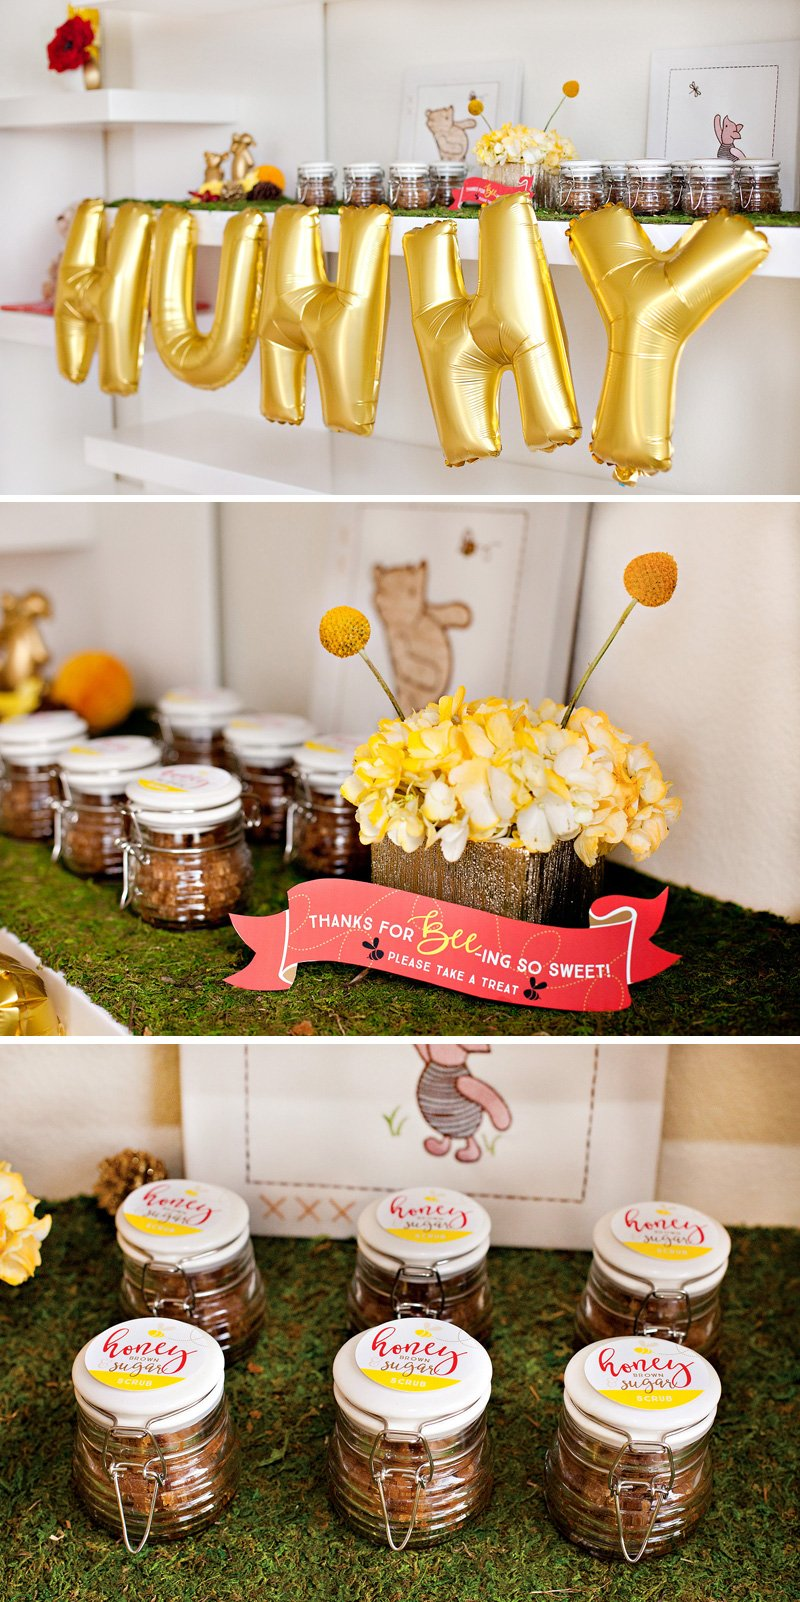 Winnie the Pooh Honey Sugar Scrub Baby Shower Favors